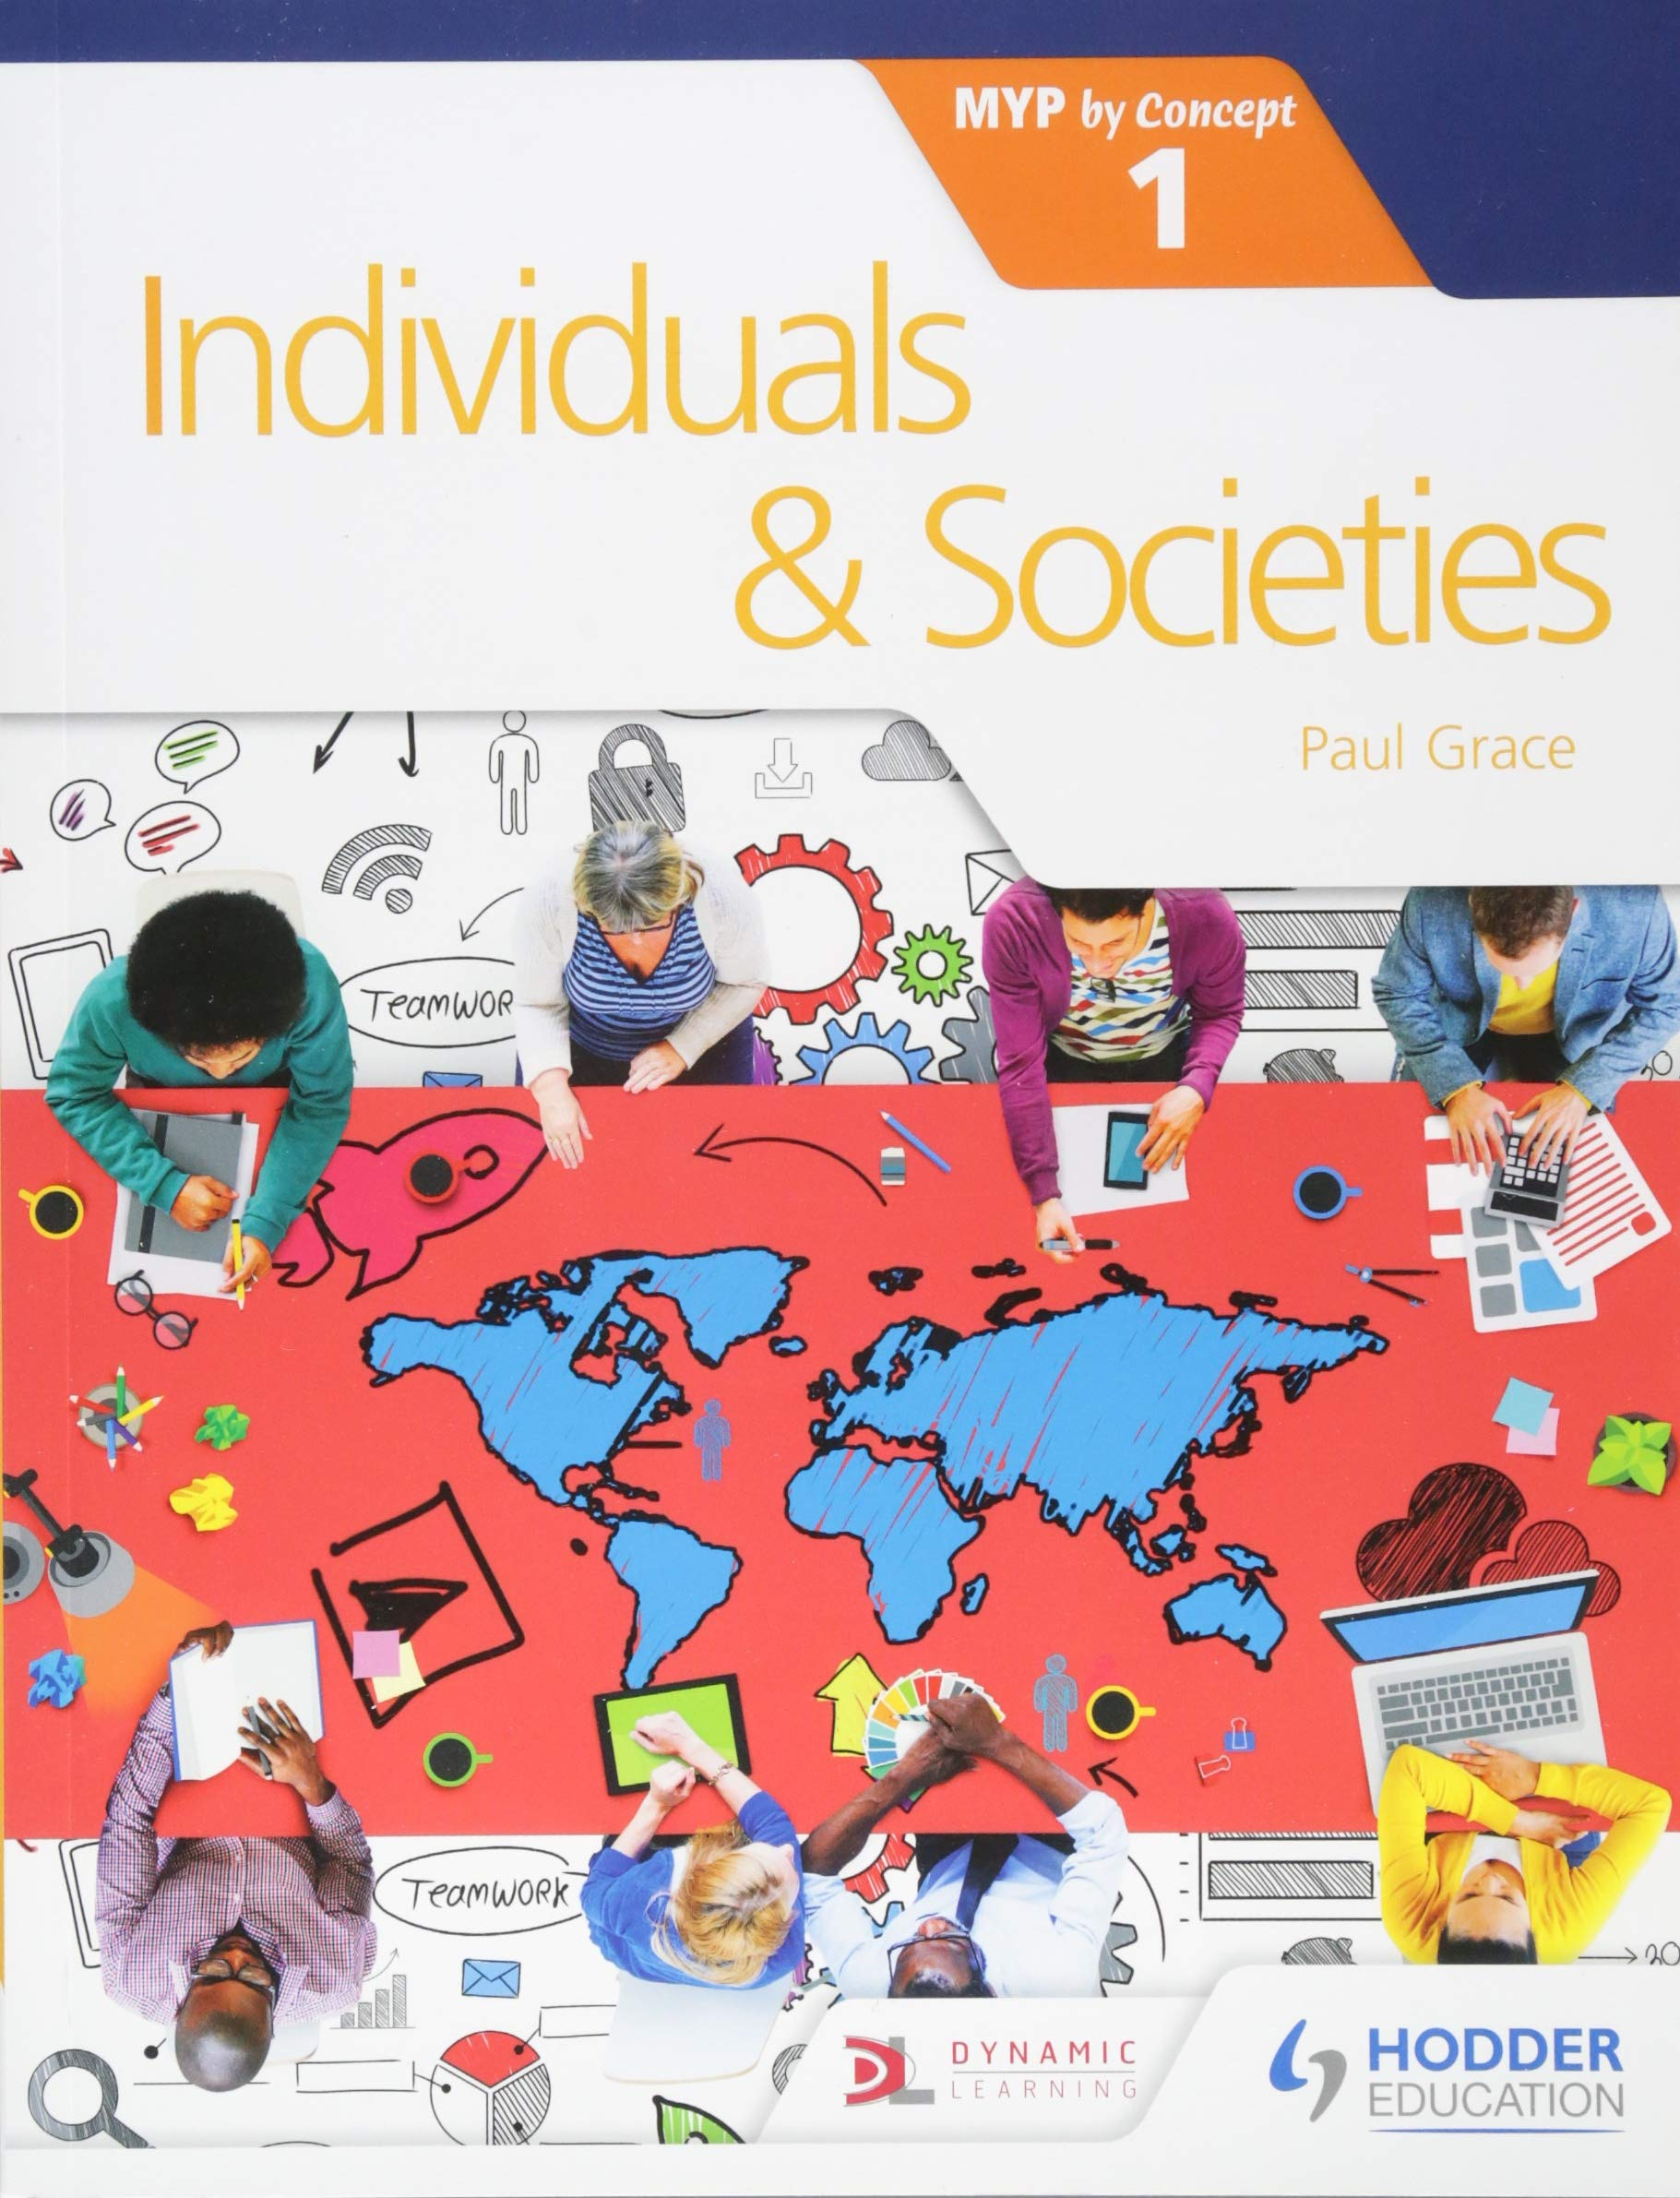 Individuals and Societies for the IB MYP 1: by Concept (Myp